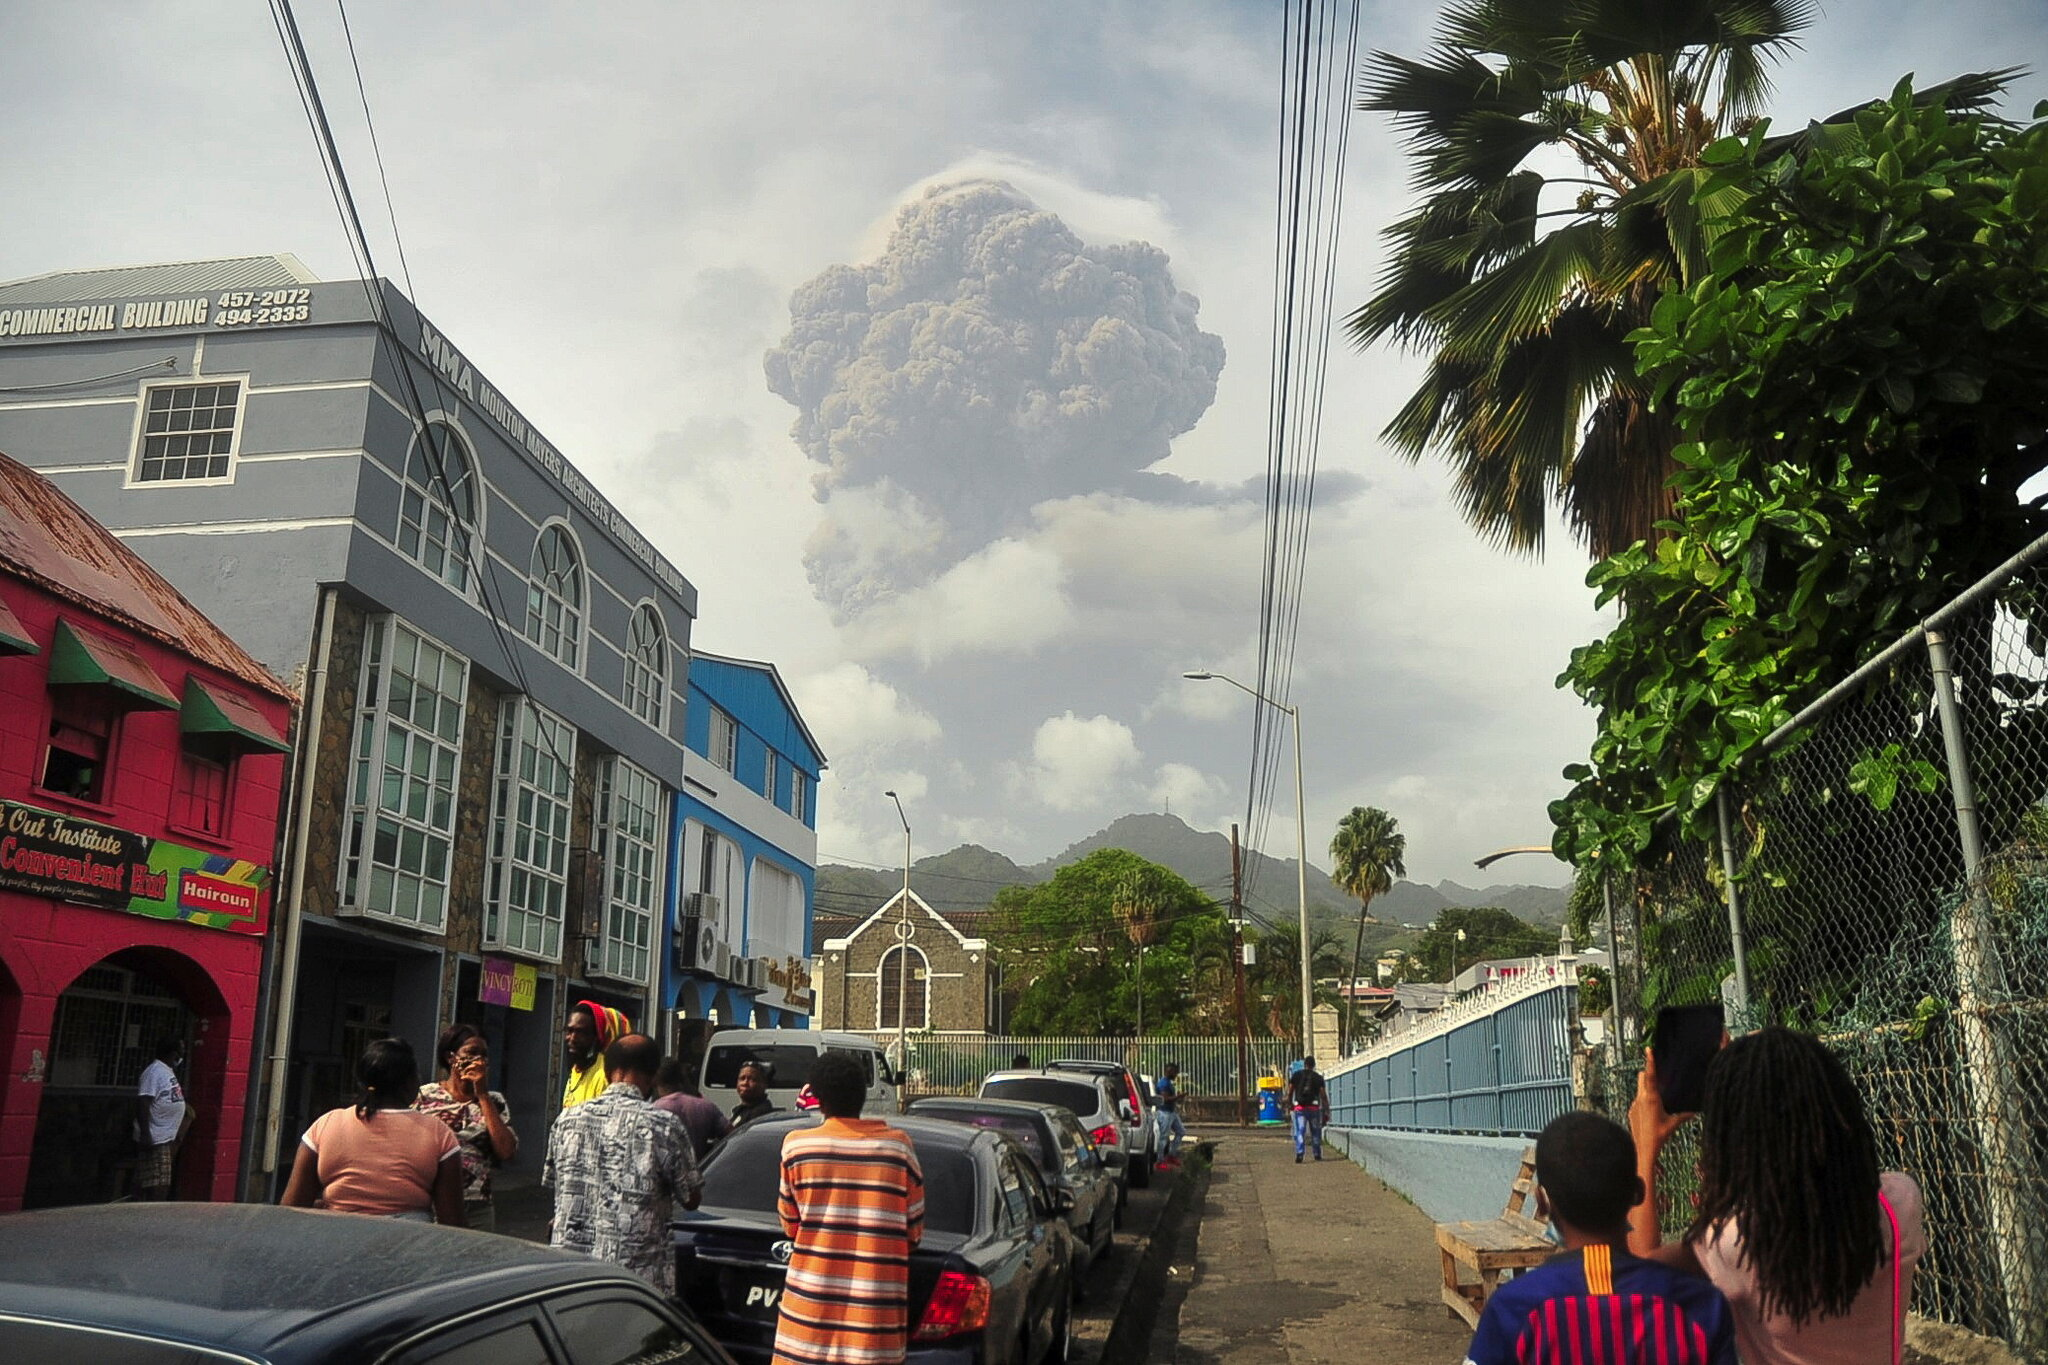 Eruption in the Caribbean: The La Soufrière Volcano